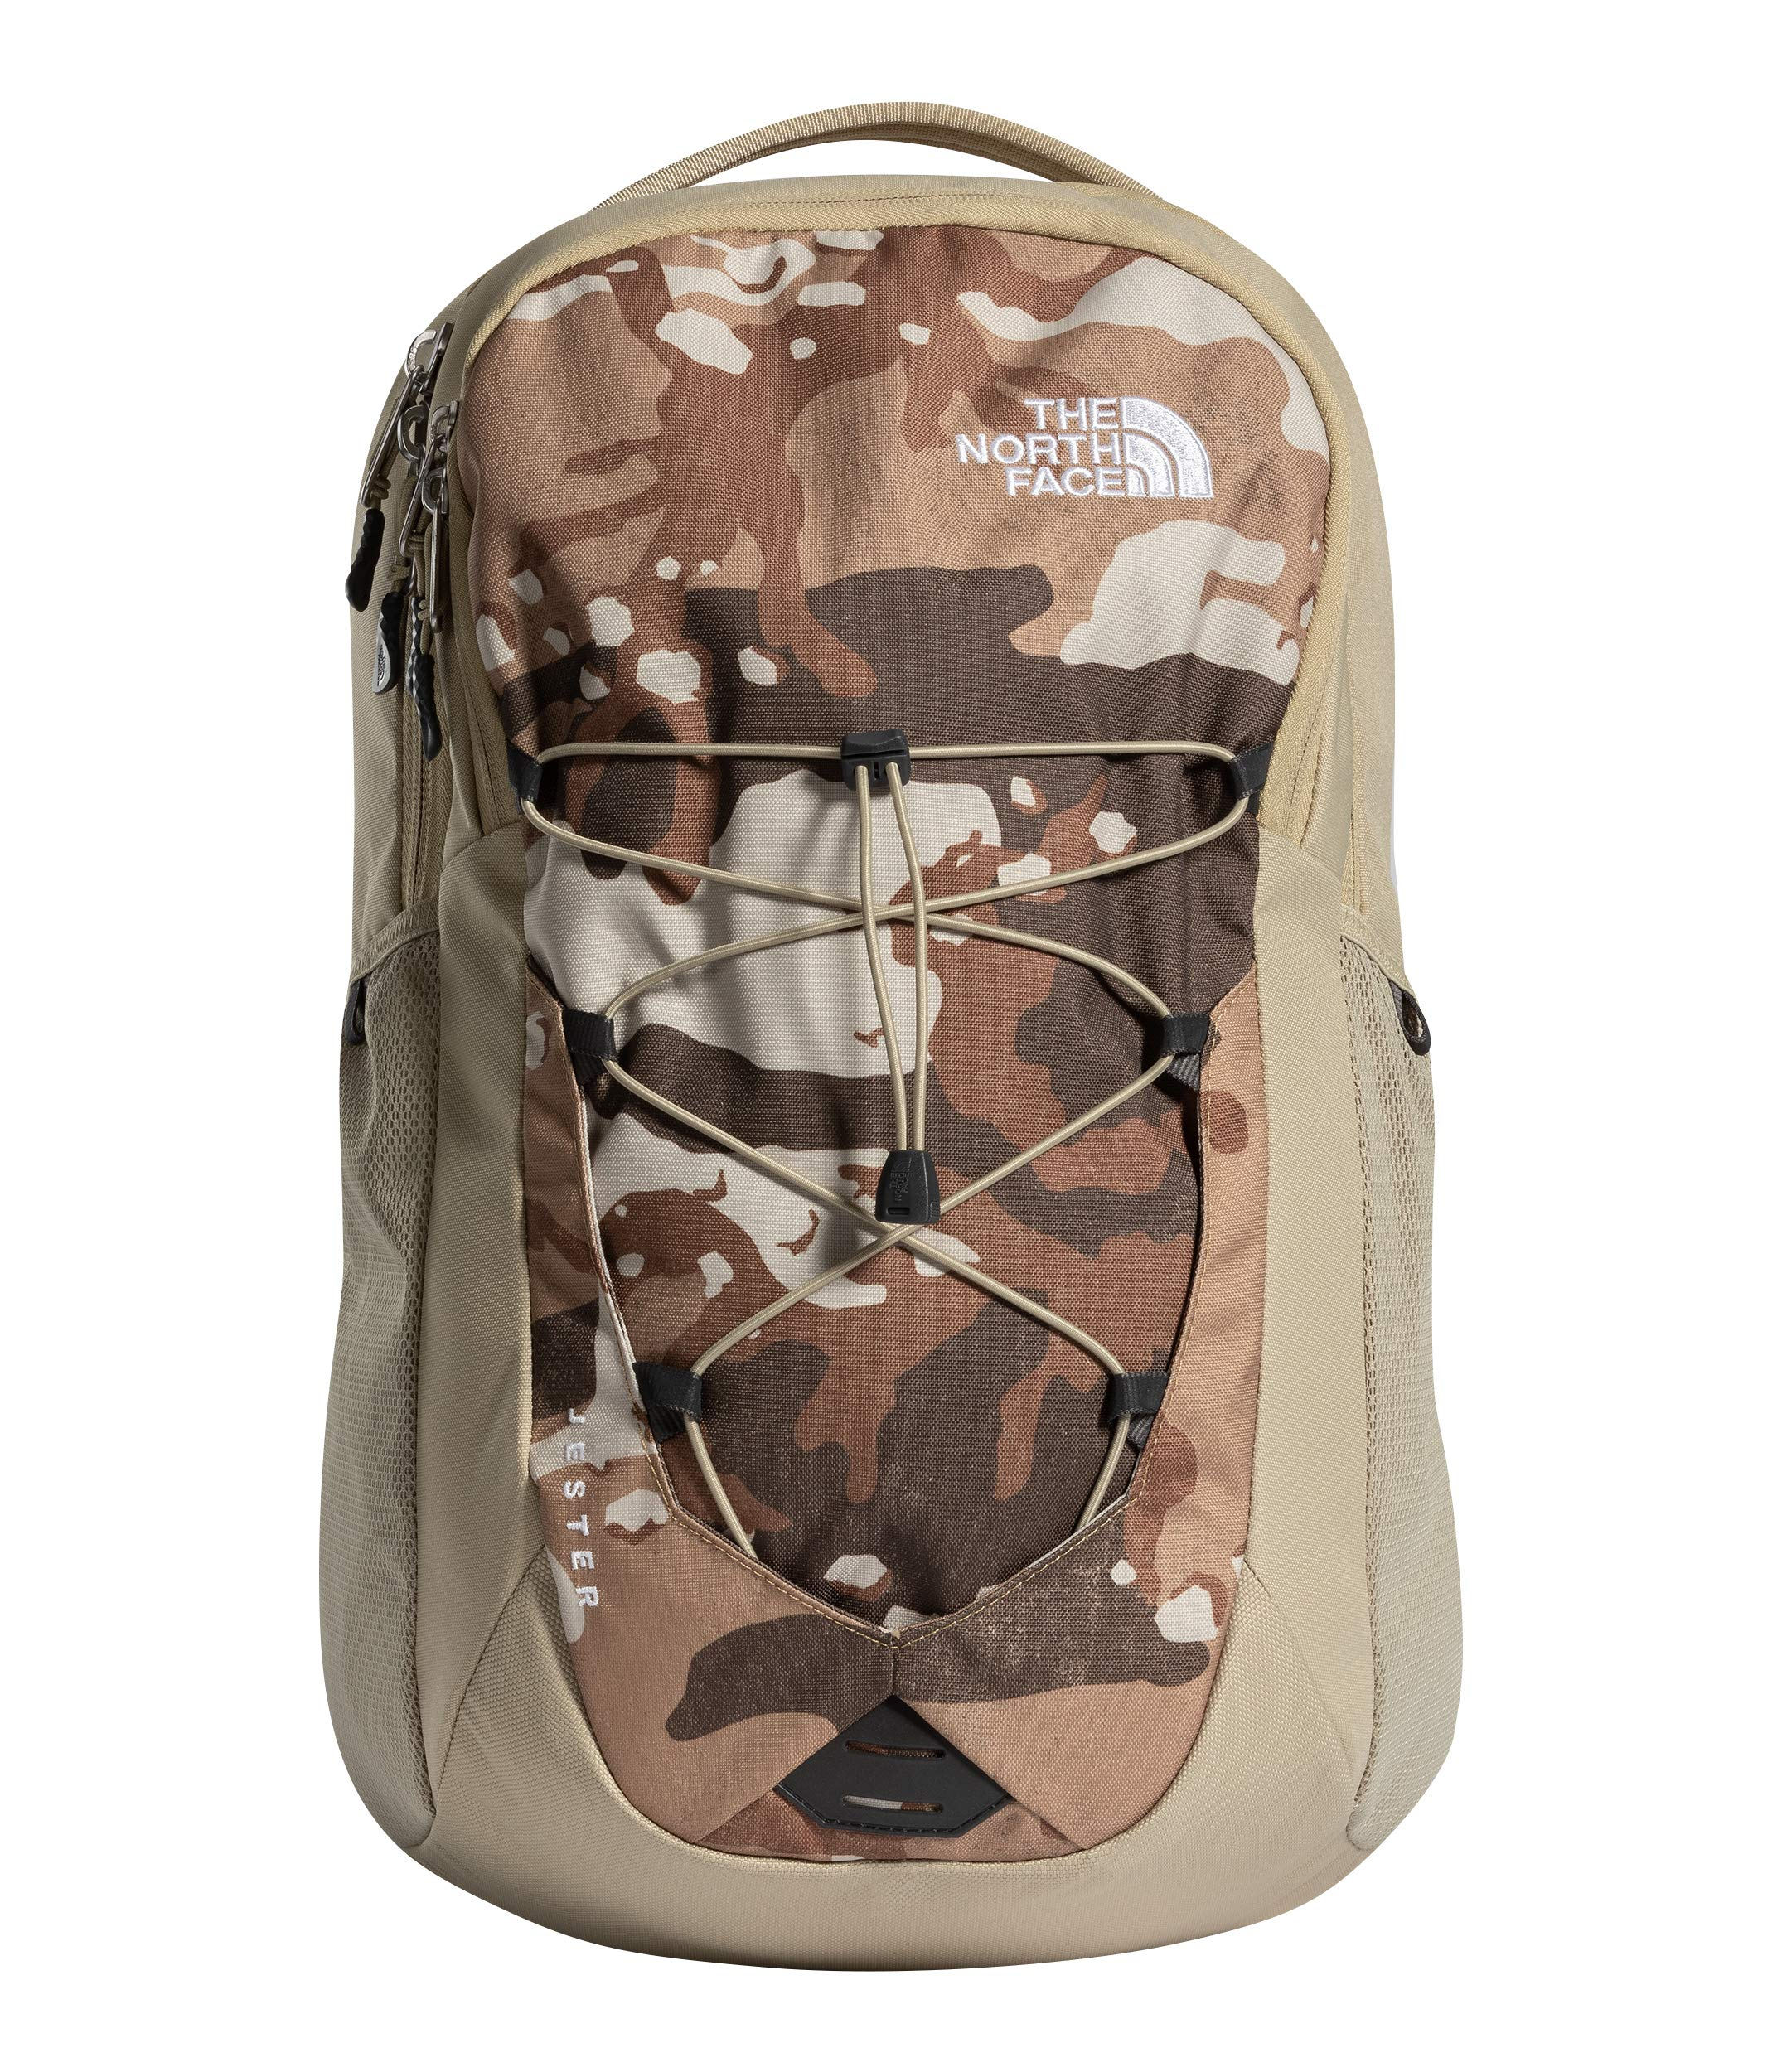 The North Face Jester Backpack, Moab Khaki Woodchip Camo Desert Print/Twill Beige by The North Face